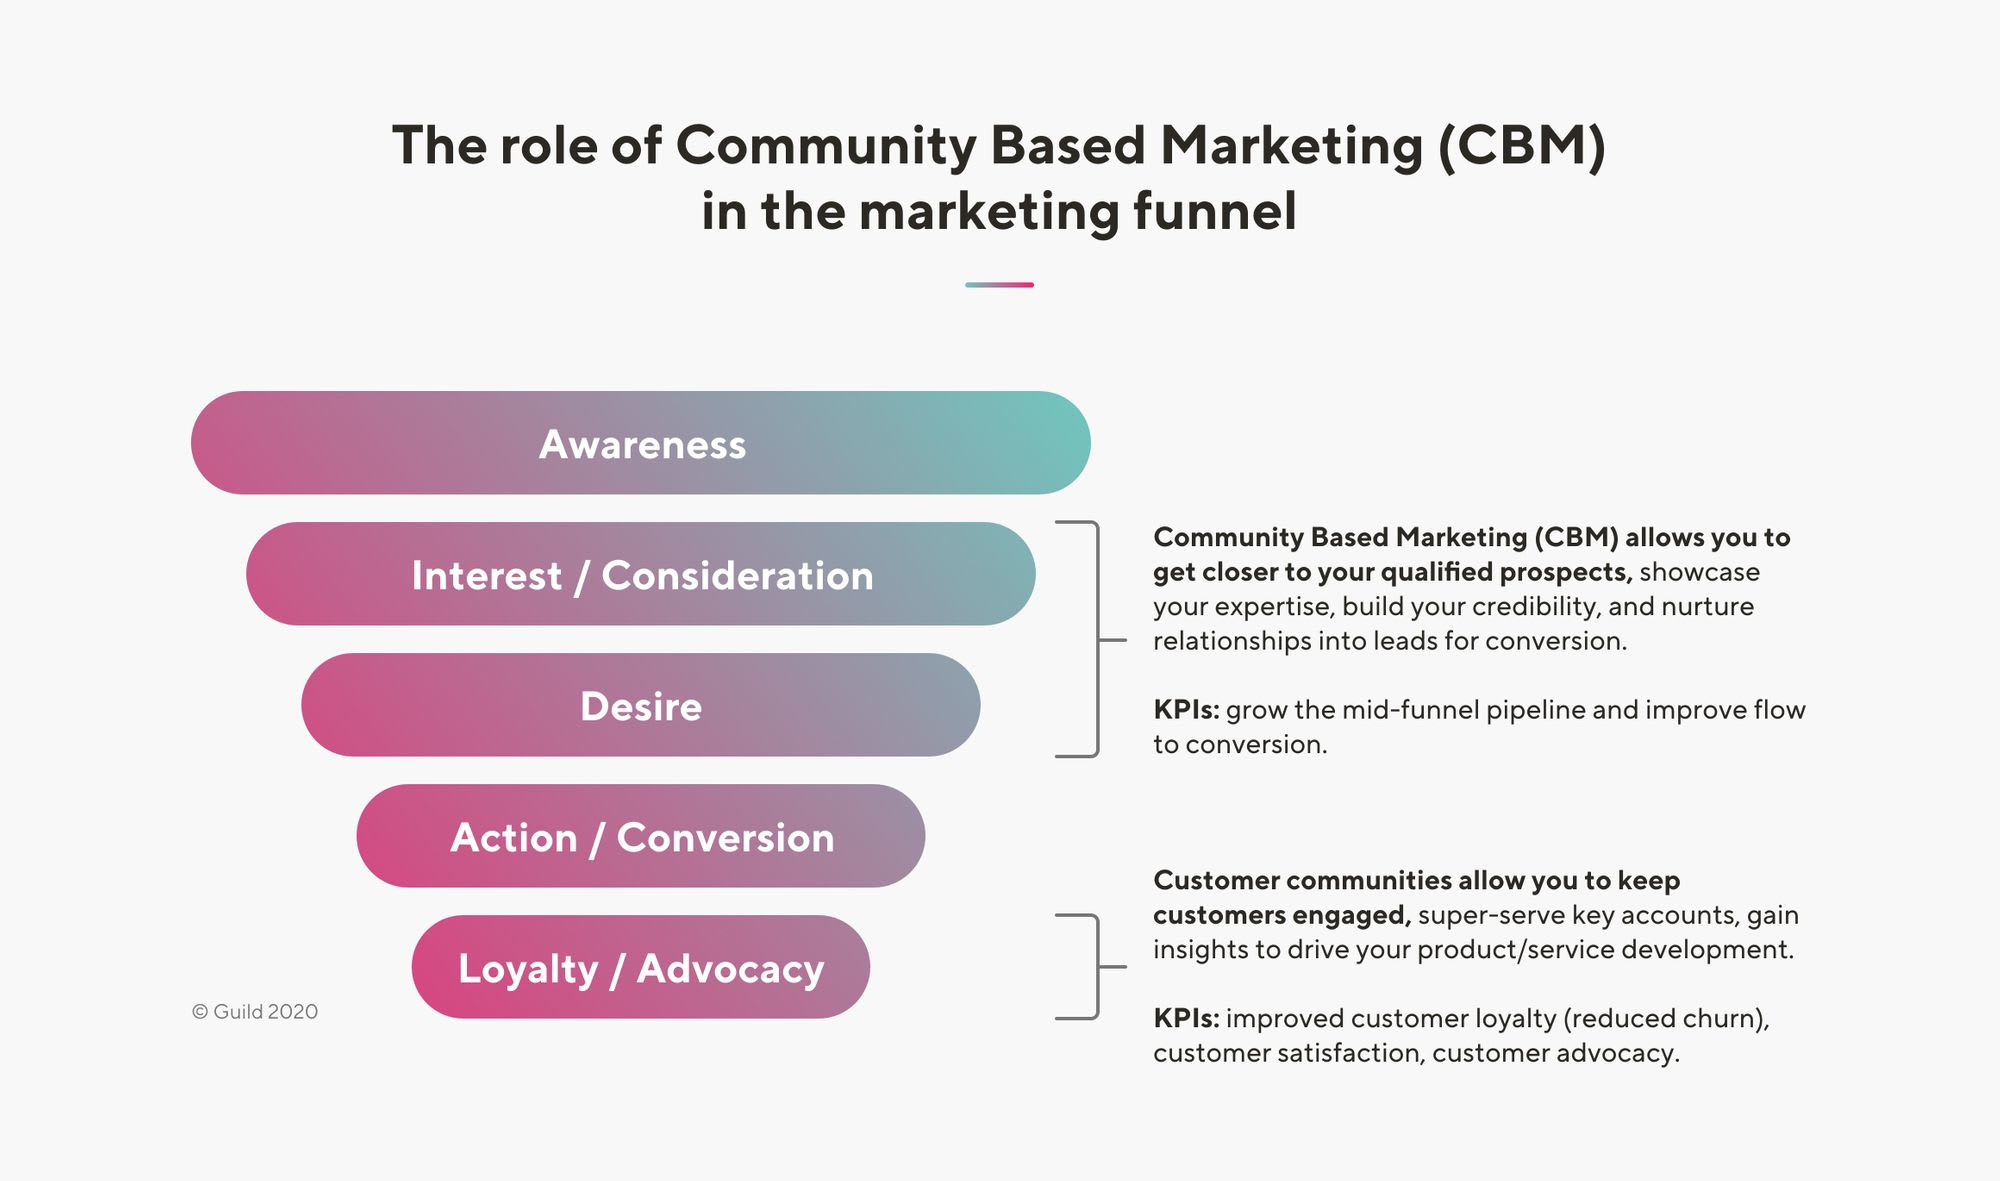 The role of community based marketing in the marketing funnel